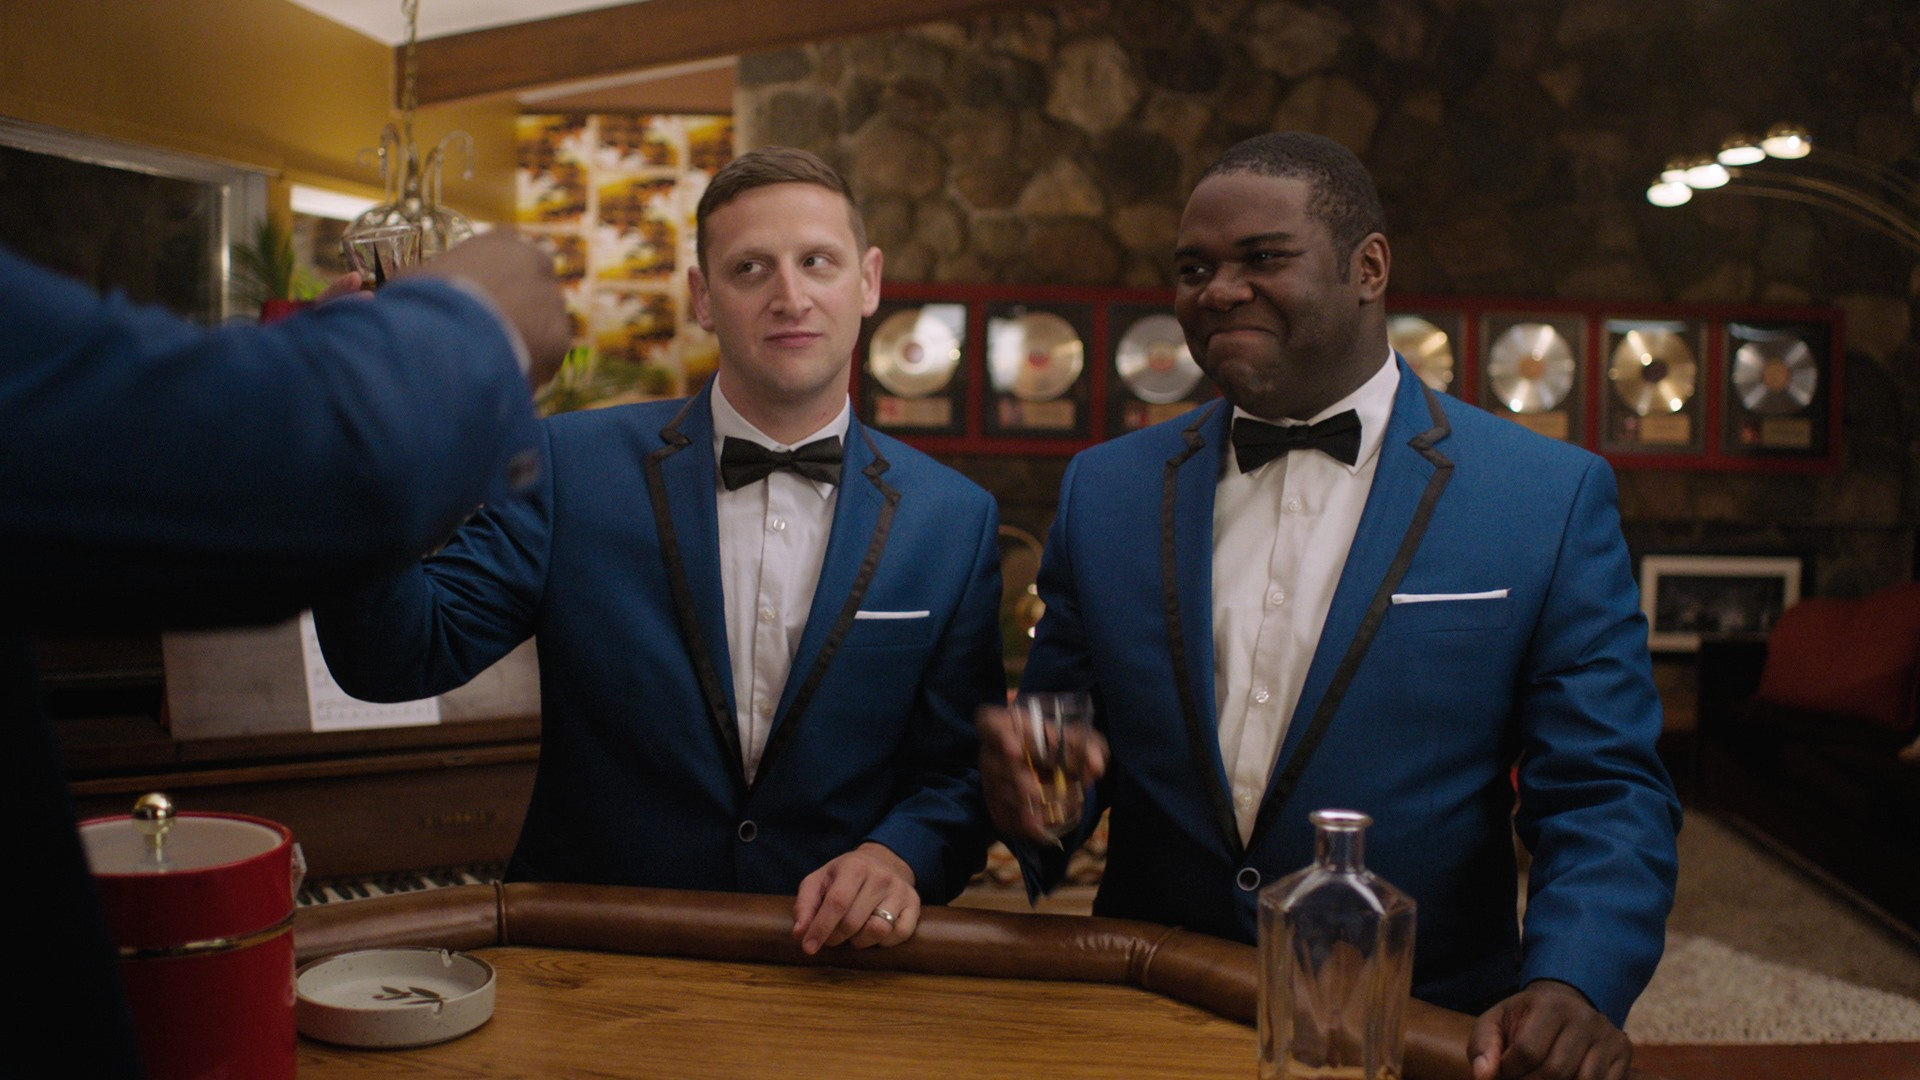 Sam Richardson and Tim Robinson raise a toast in a scene from Detroiters